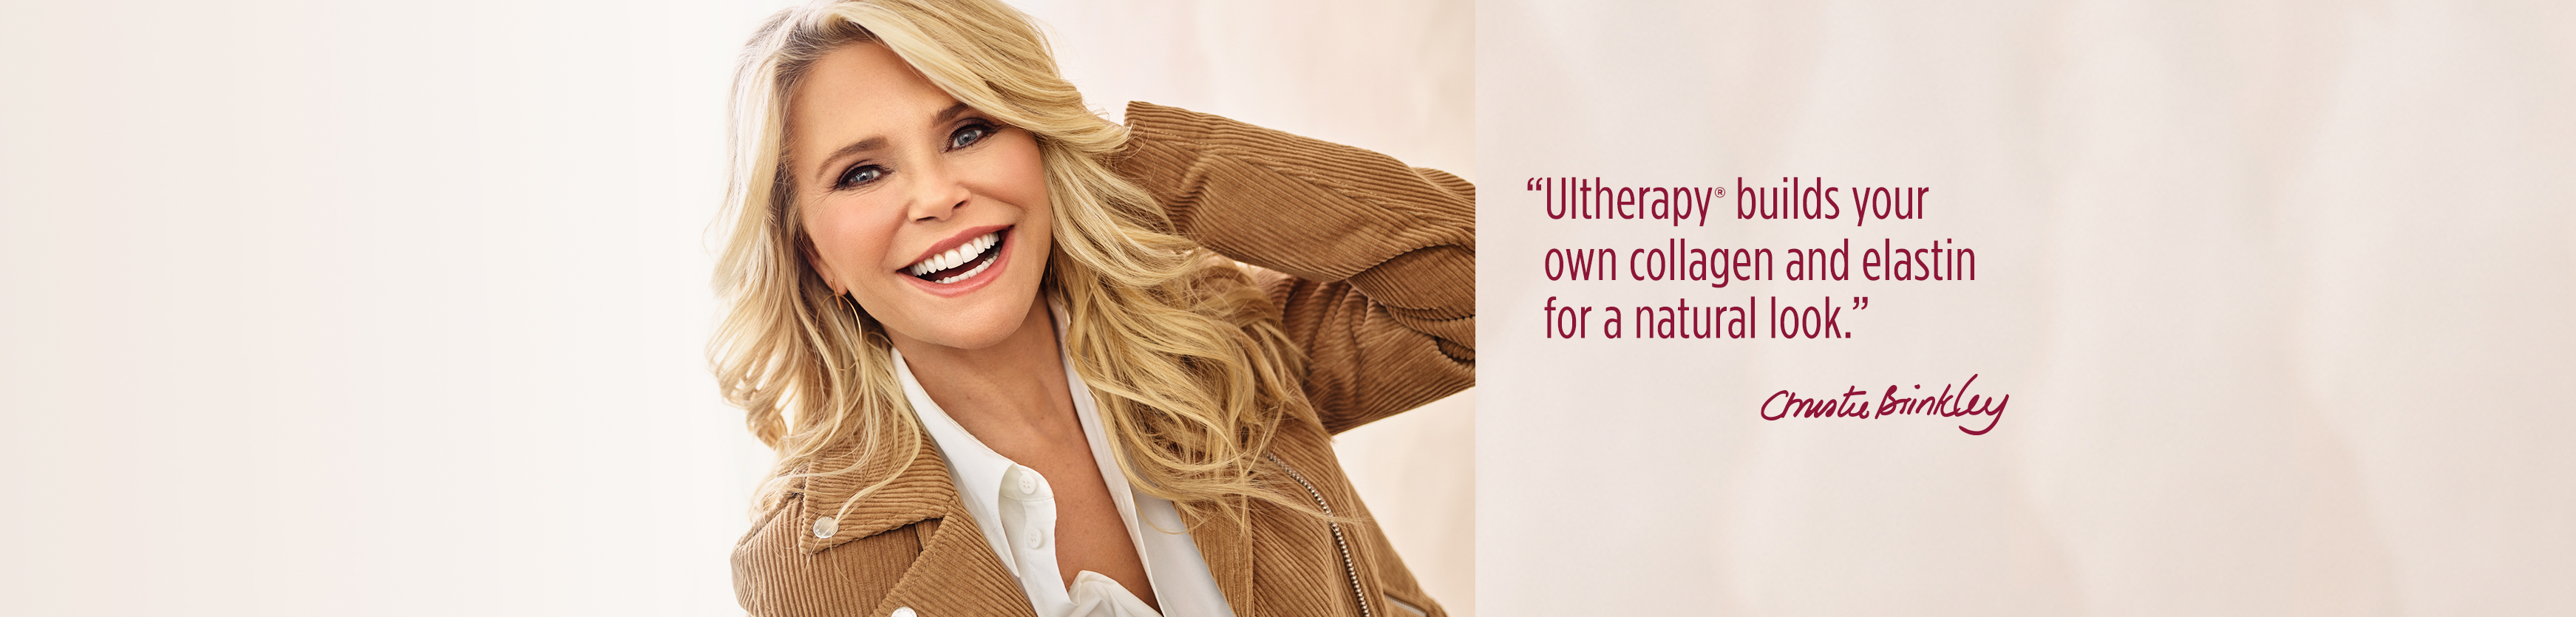 ultherapy-brinkly-1